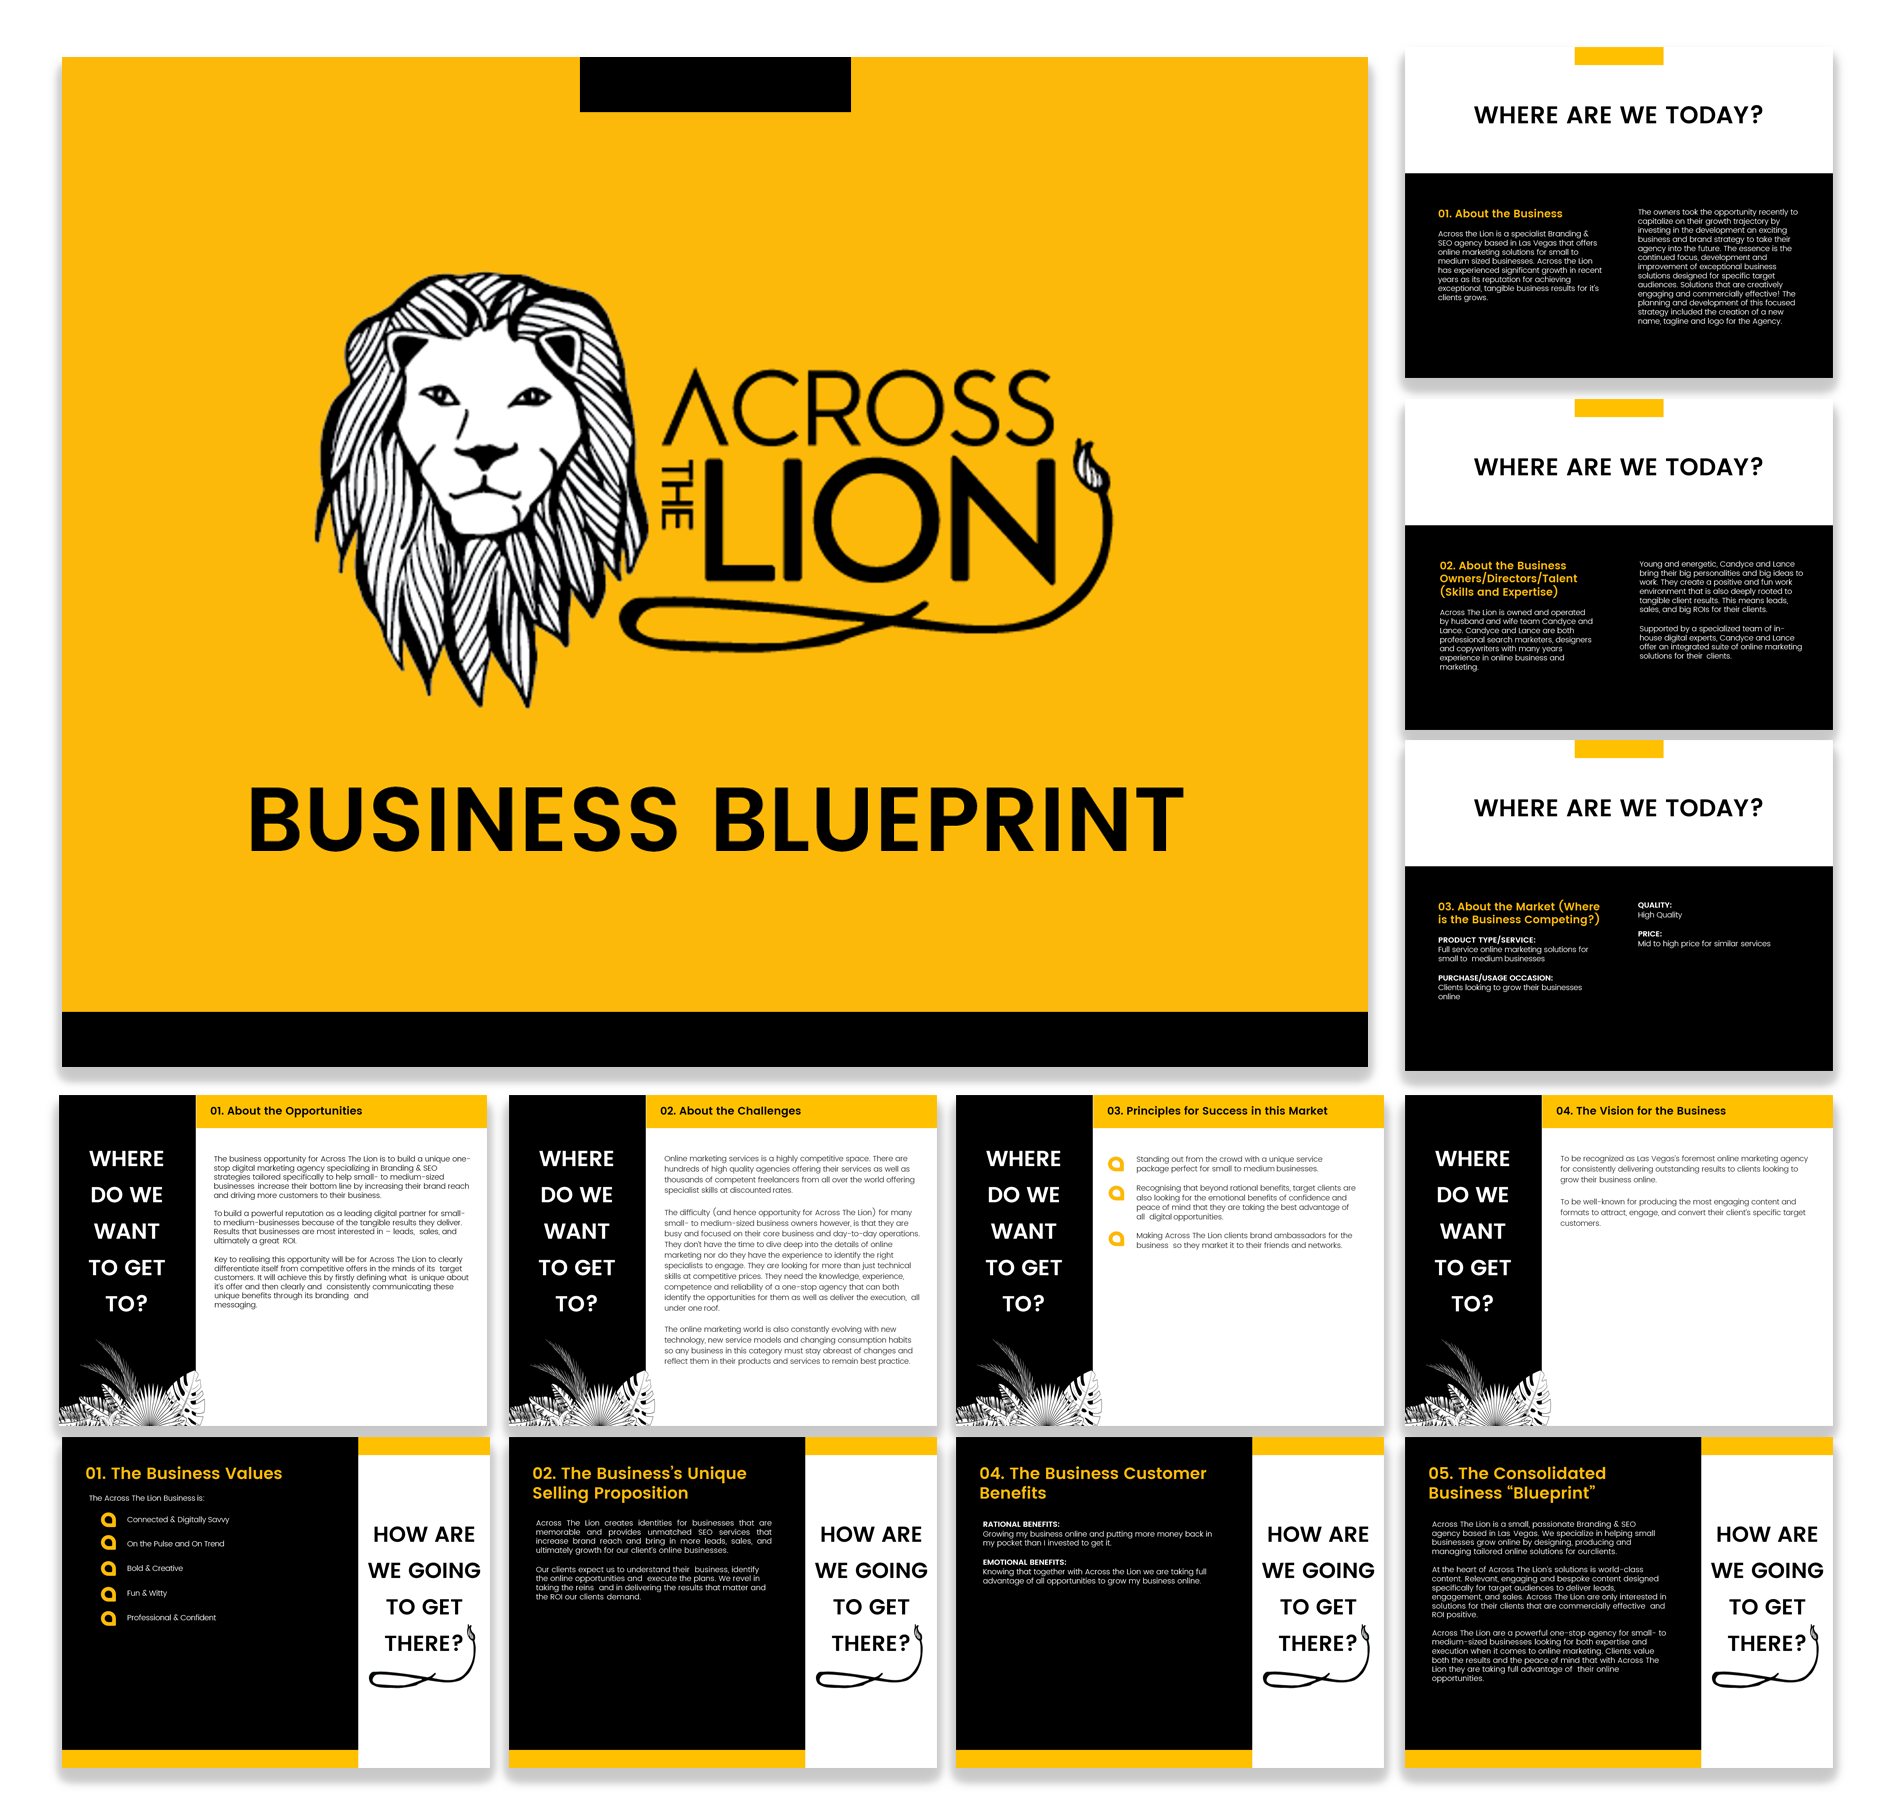 Business Blueprint Design